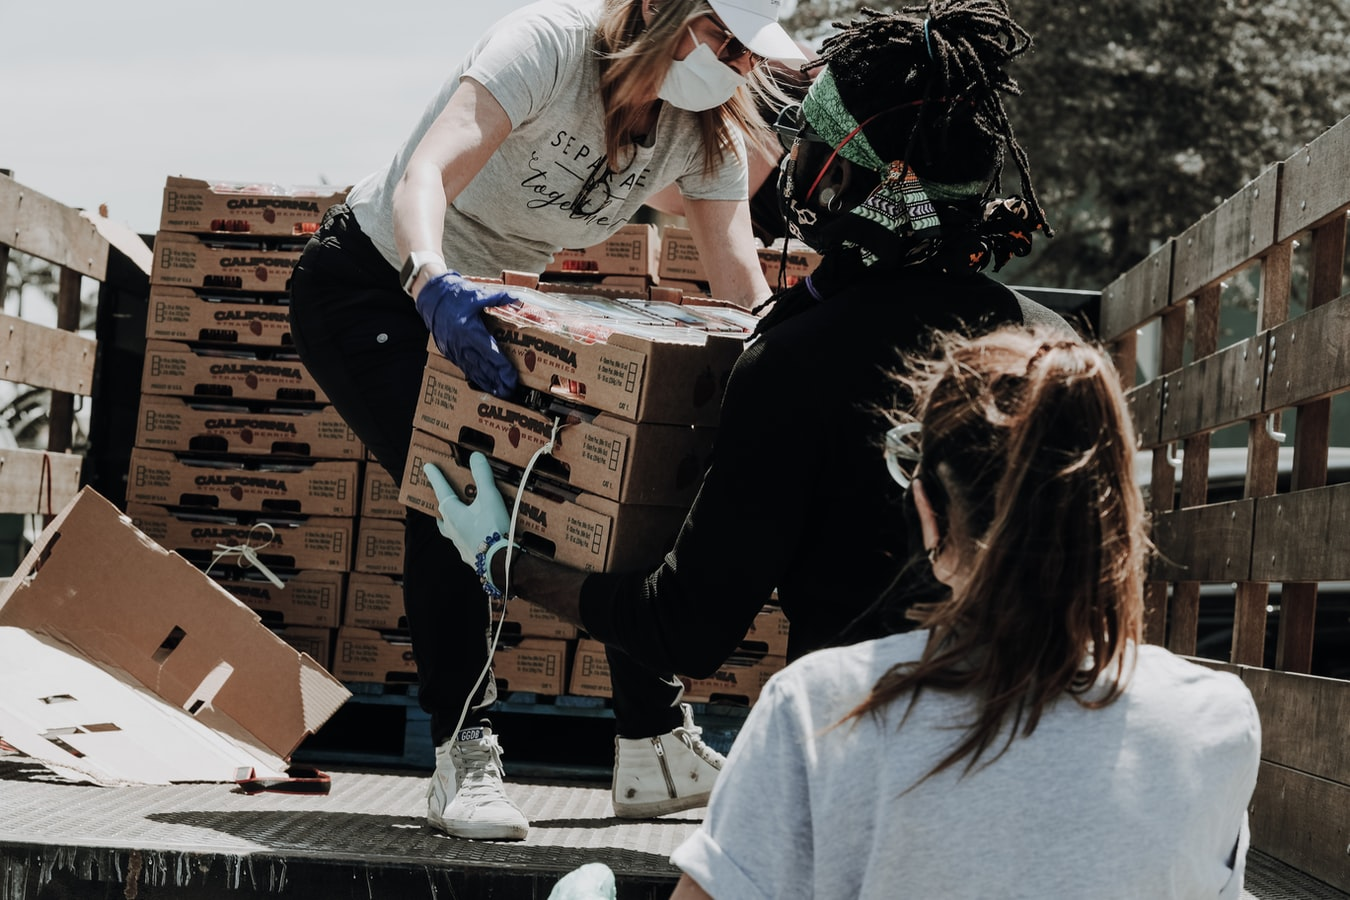 Volunteer workers unloading a flatbed truck of fresh produce